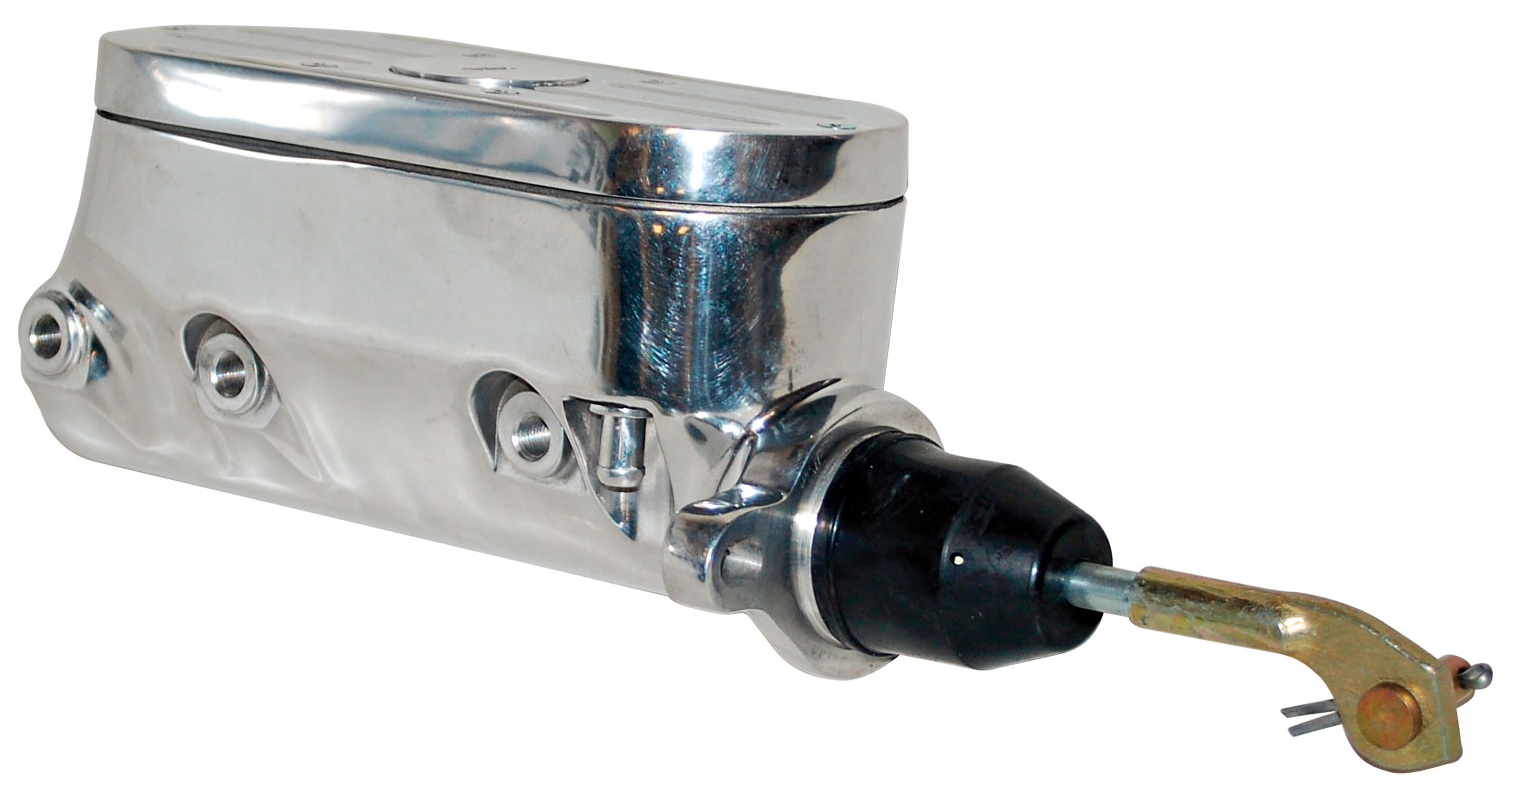 Aluminum Master Cylinder The System Includes A Compact Electric Supply Which Is Source Of Boost For Braking